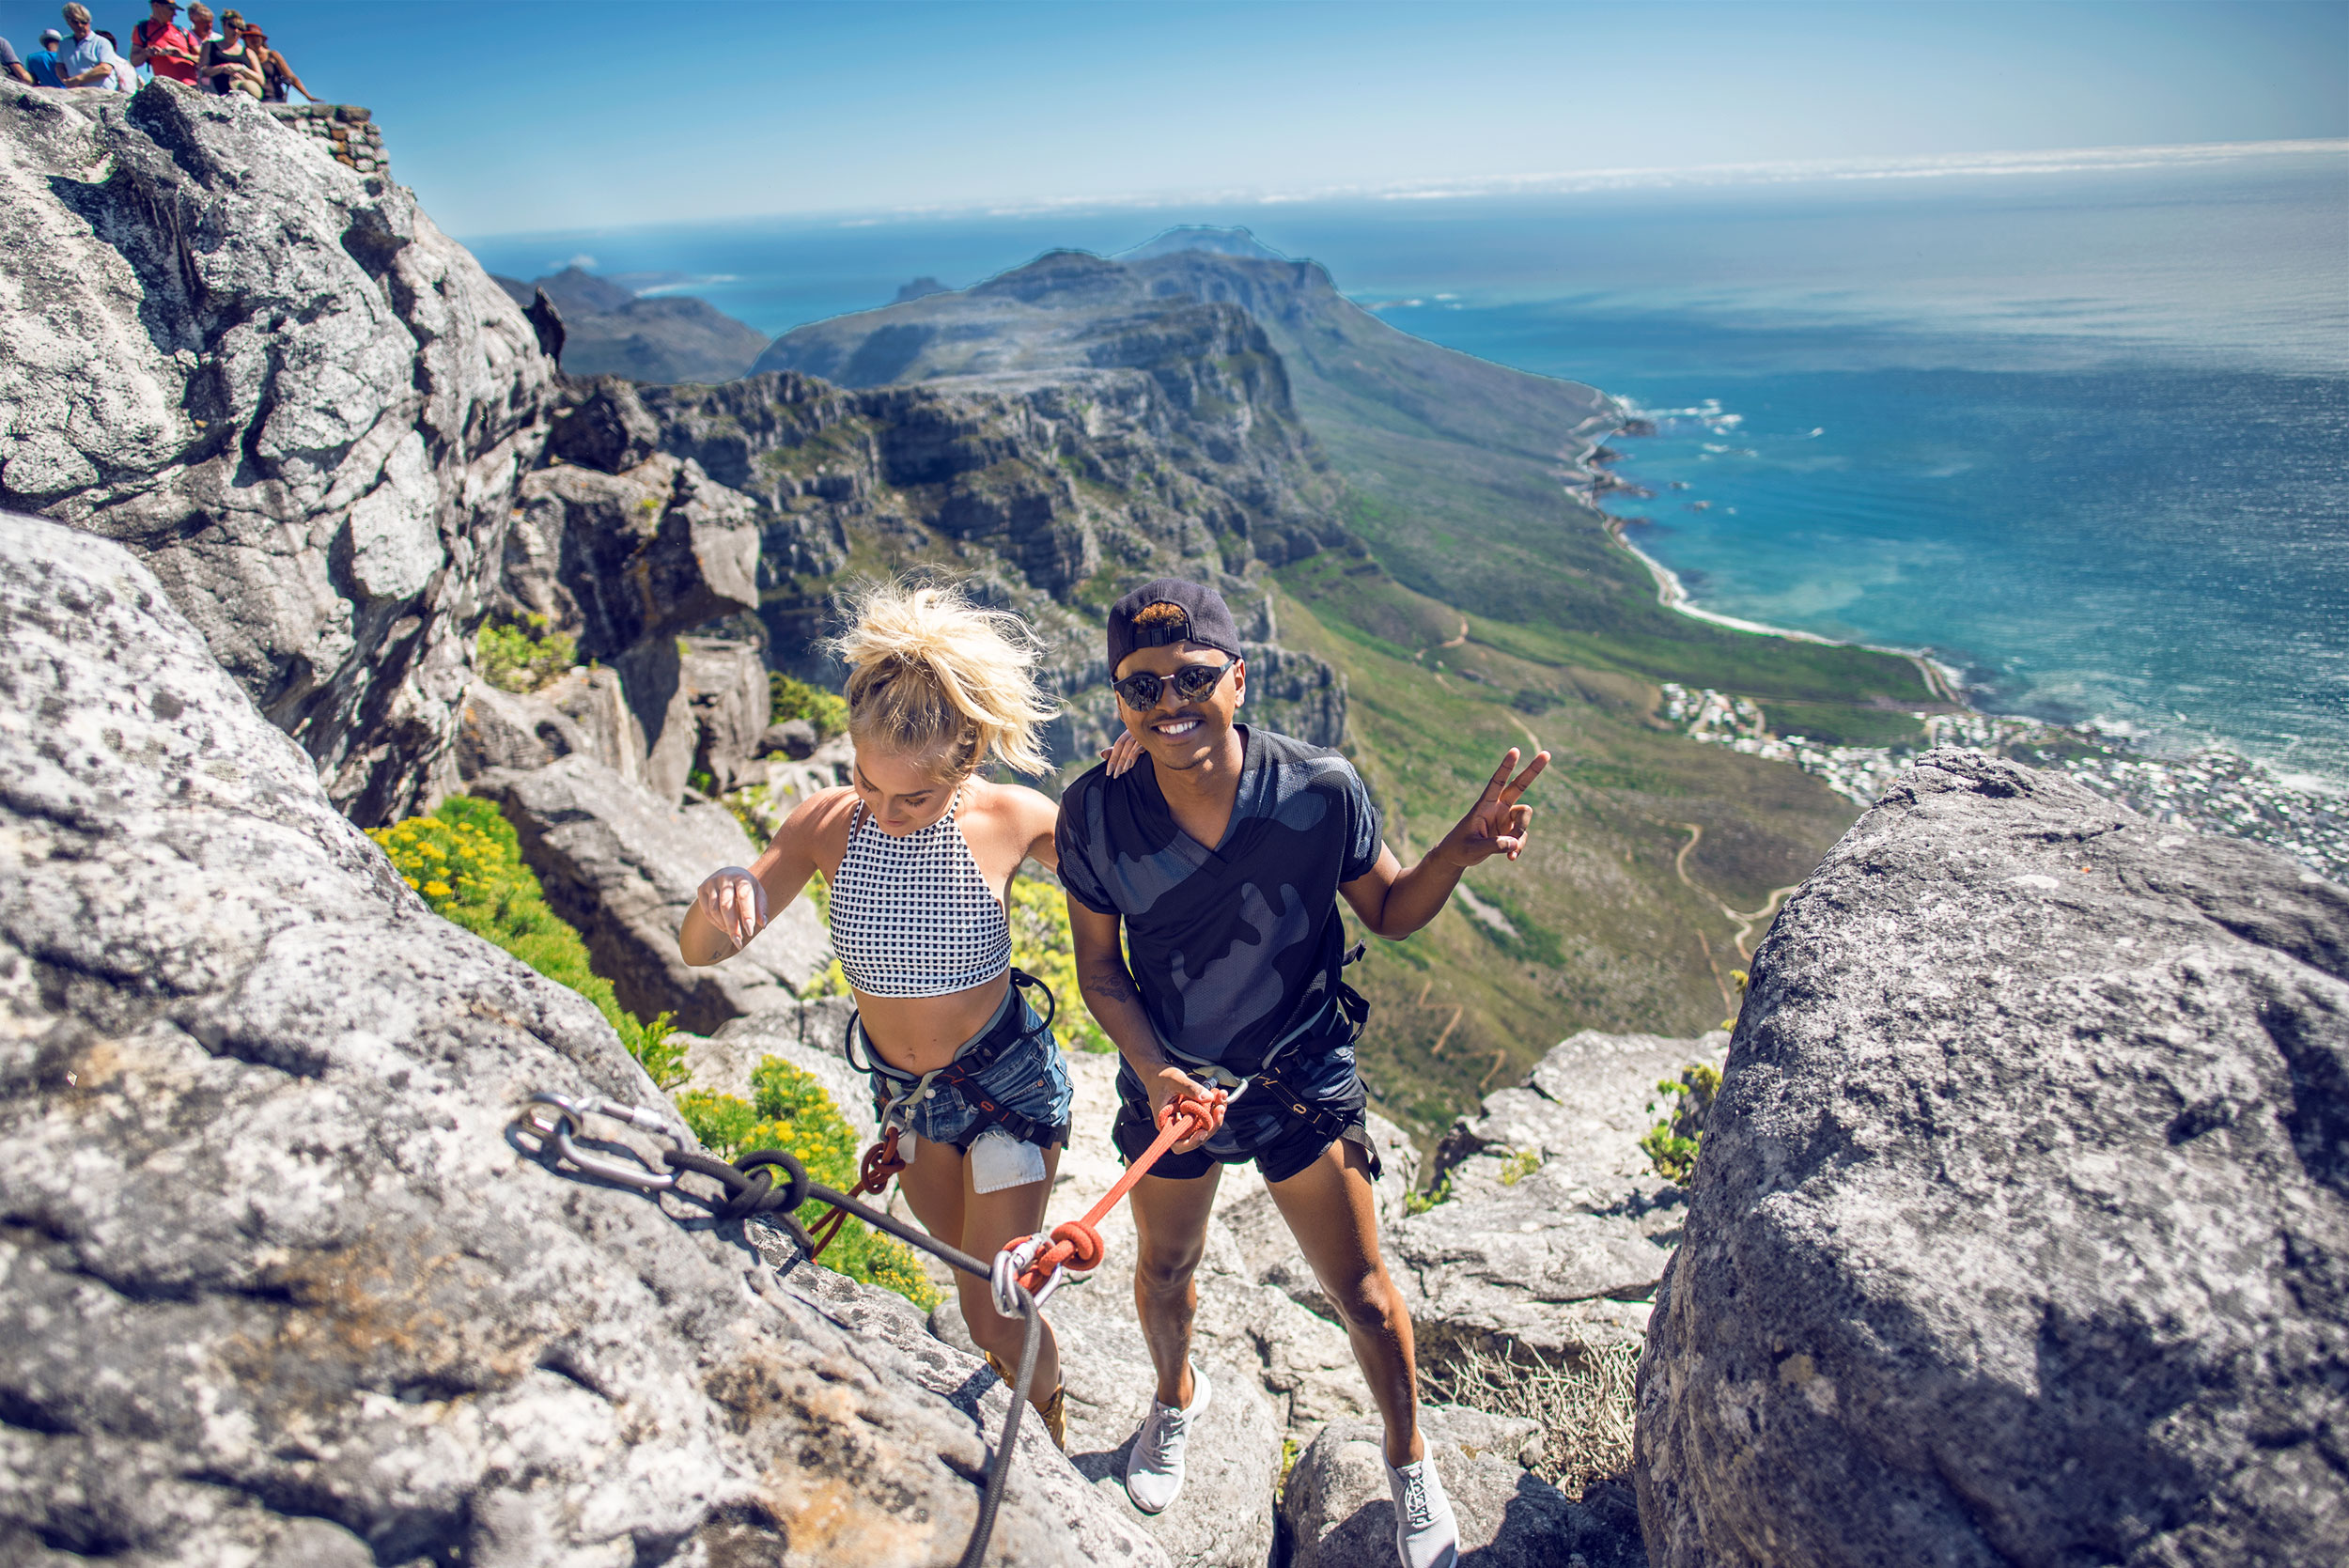 Absailing down Table Mountain